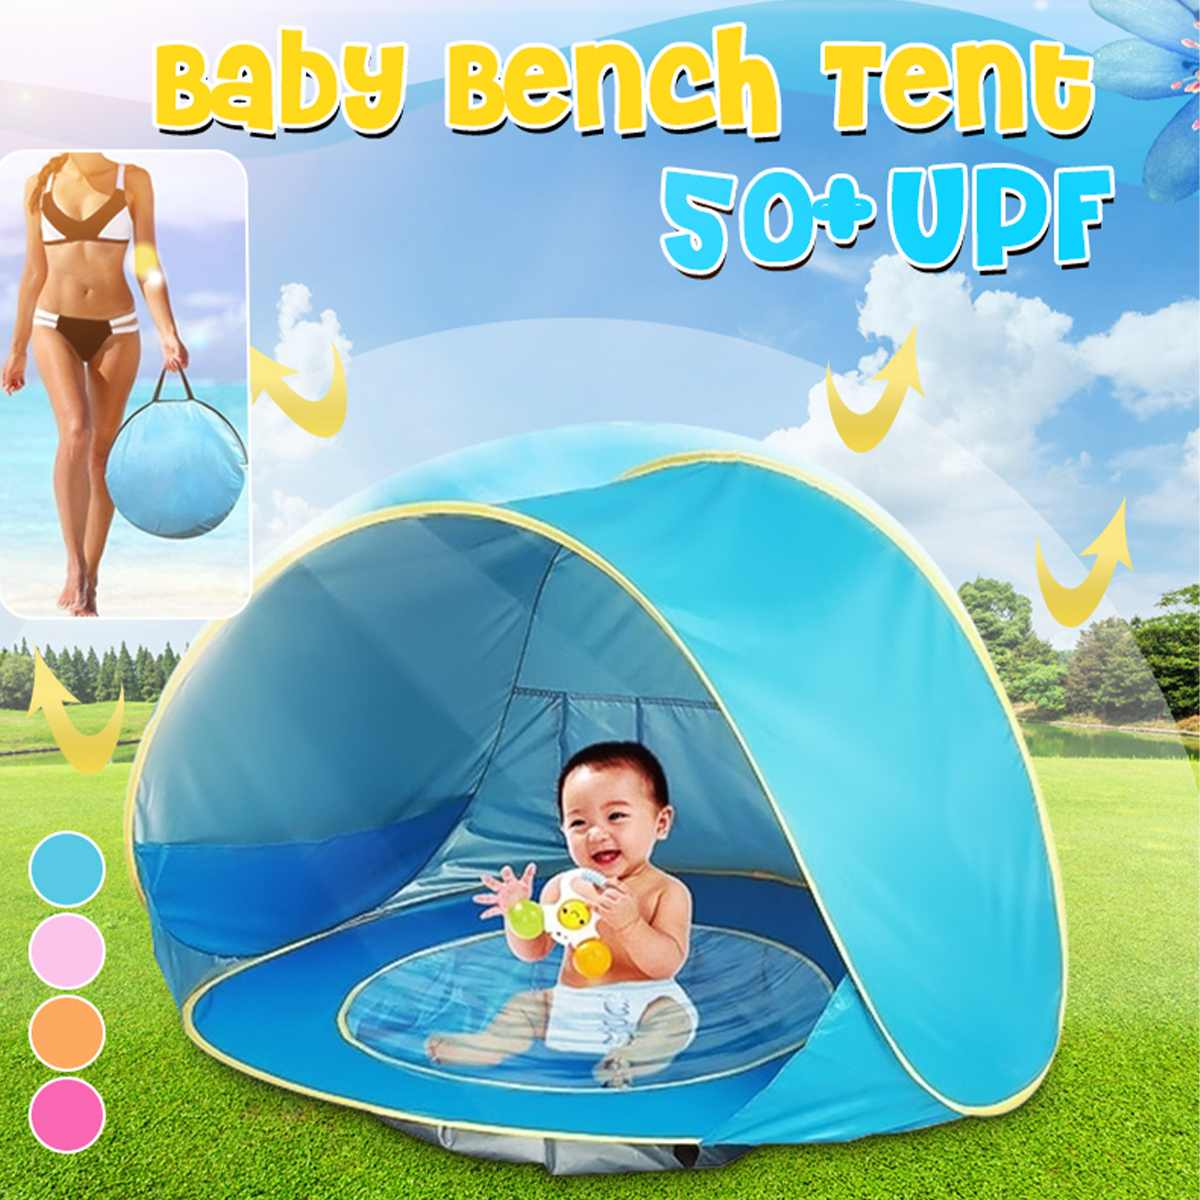 Baby Beach Tent Portable Waterproof Shade Tent Pool Outdoor Beach Automatic Pop' Up Sun Shelter For Infant Kids UV Protection